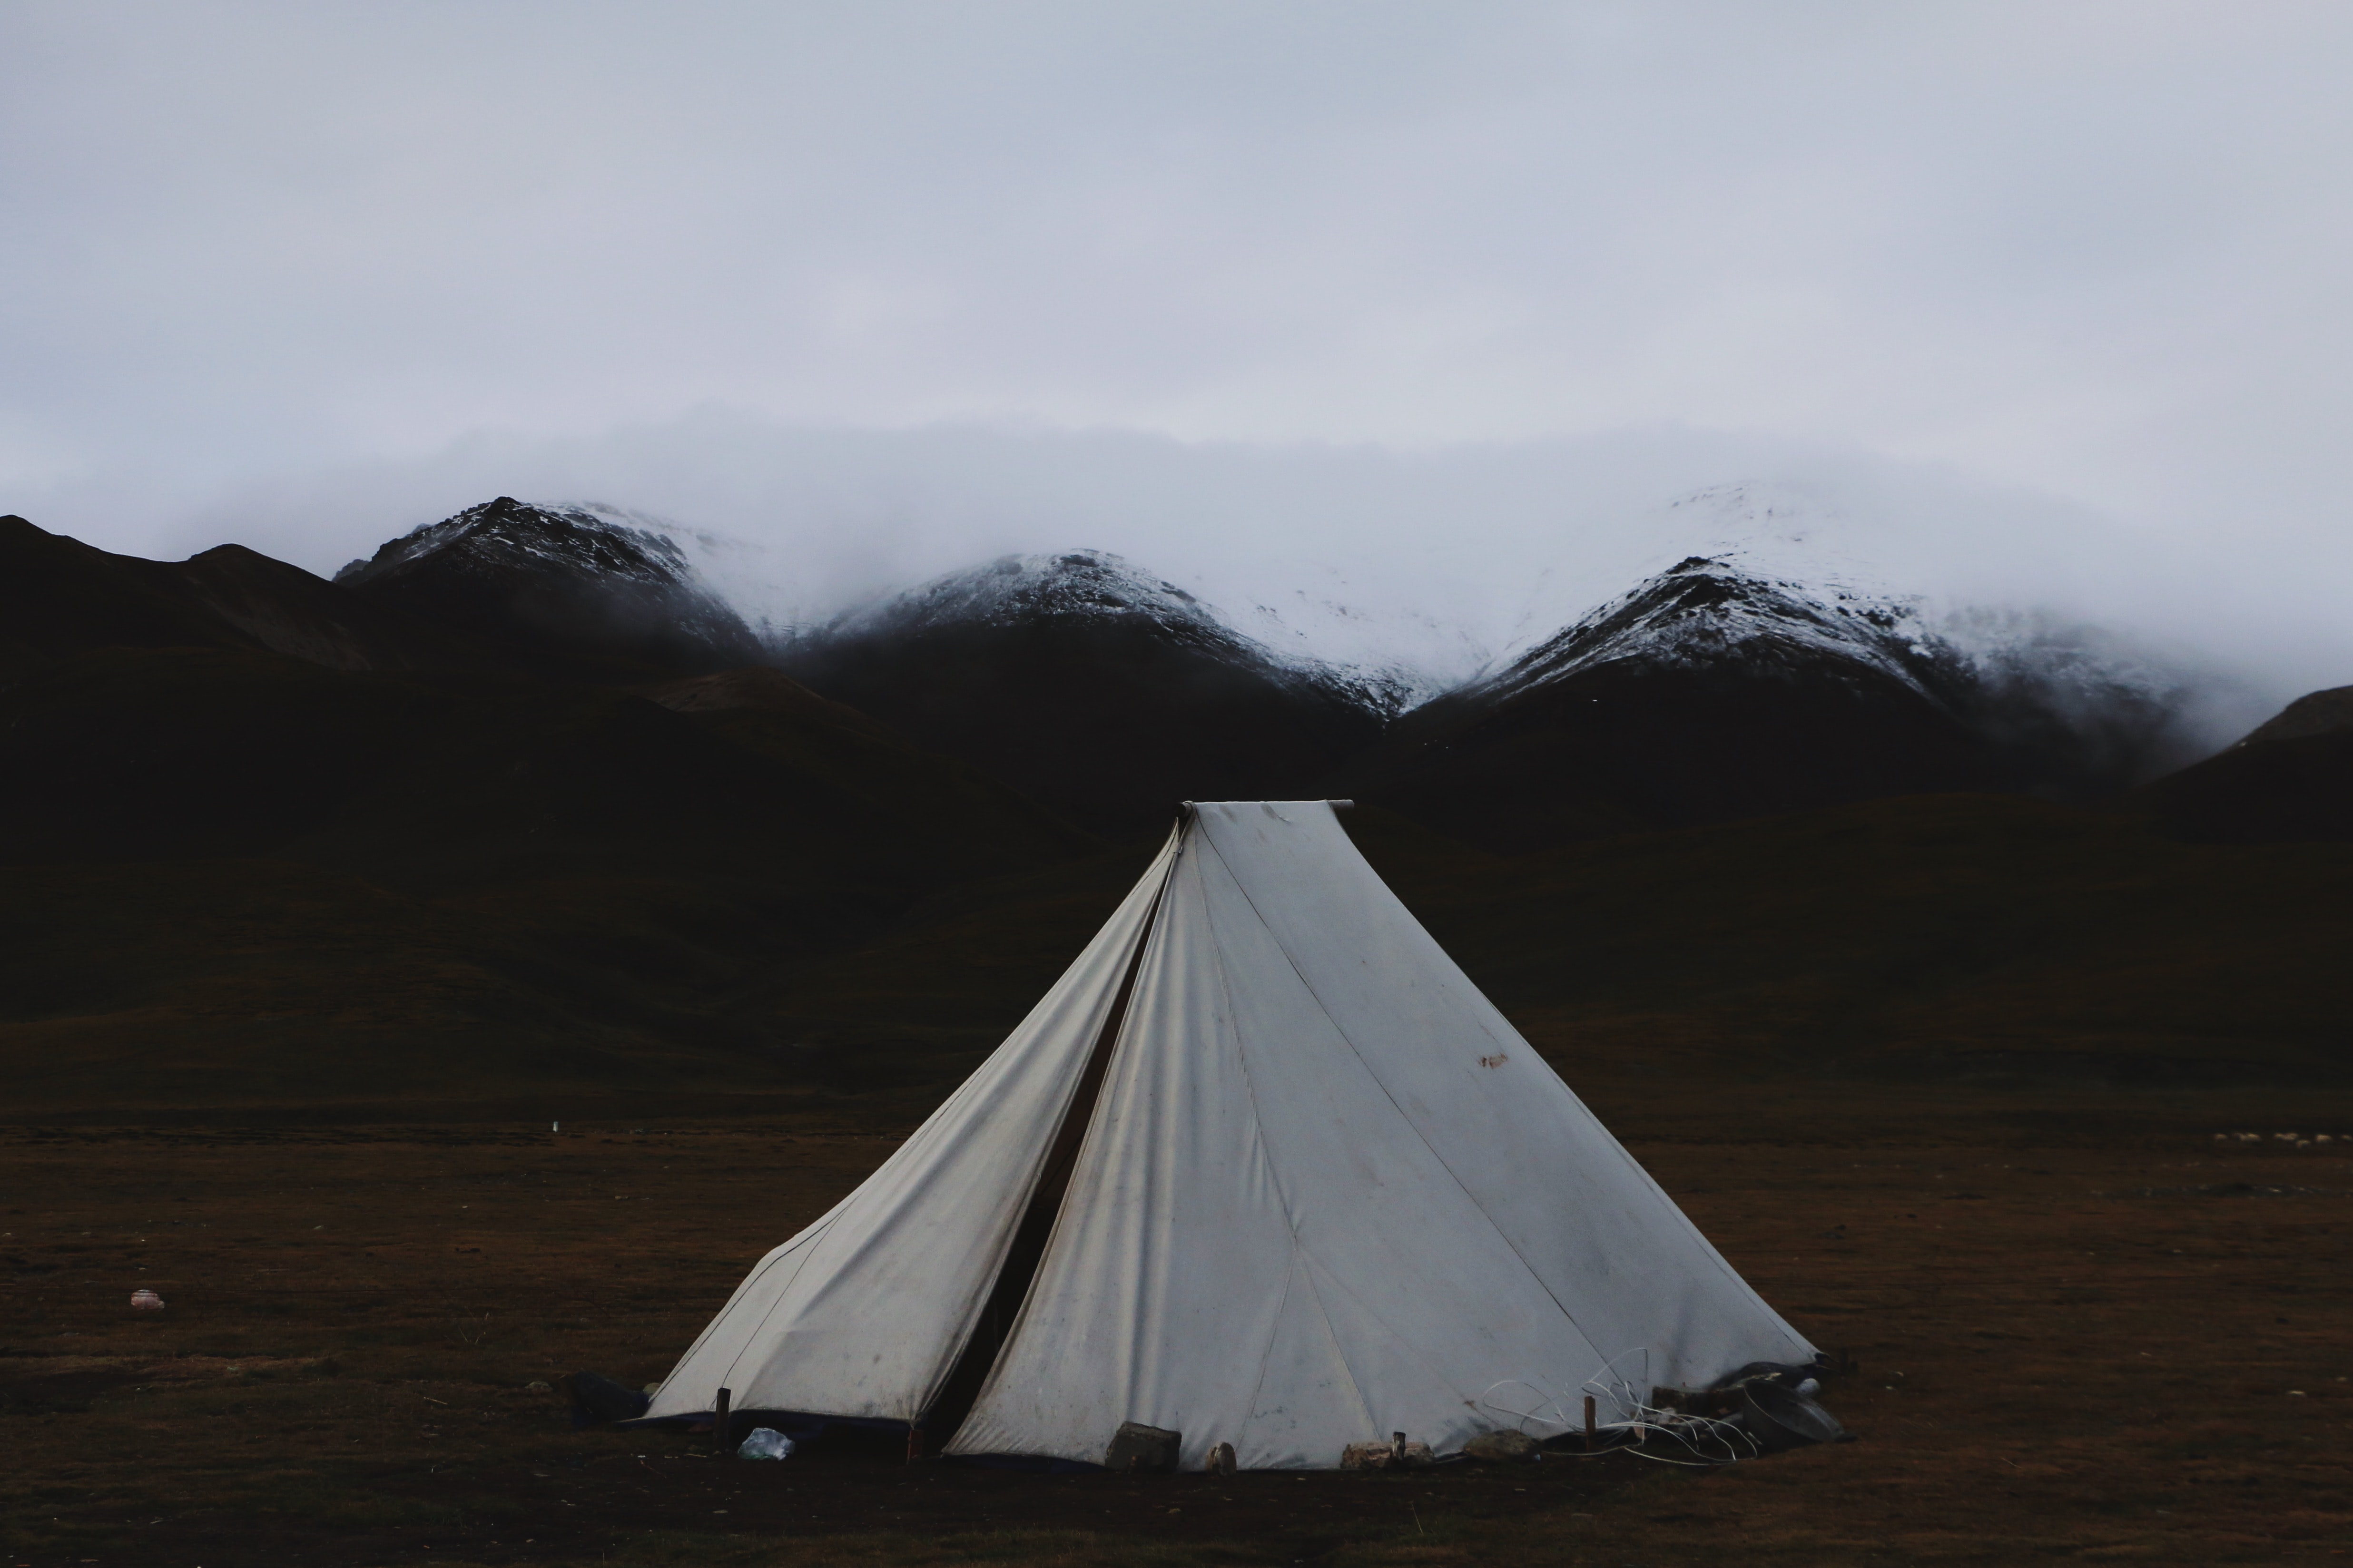 Free Unsplash photo from adore chang